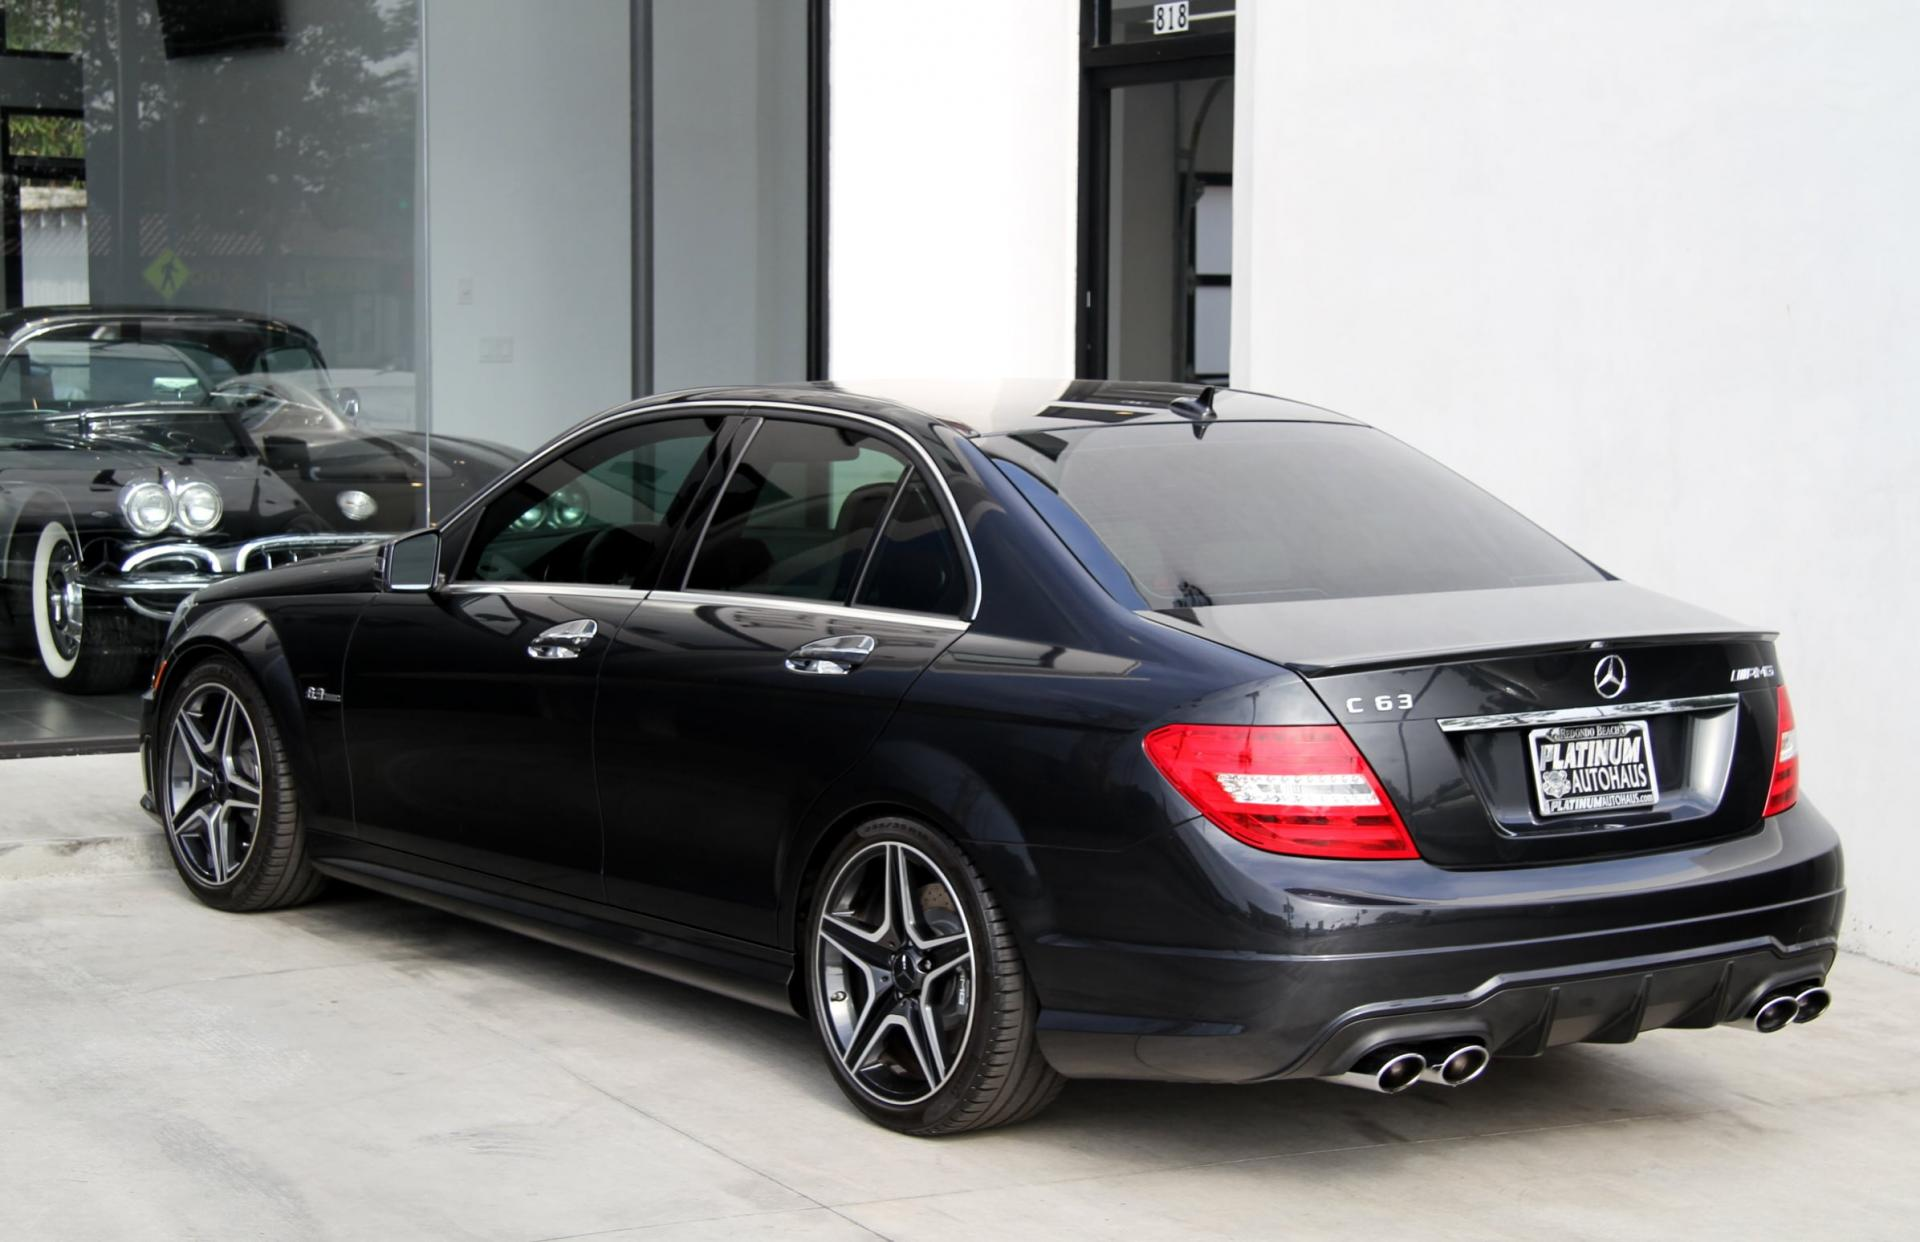 Mercedes Dealership Near Me >> 2012 Mercedes-Benz C 63 AMG Stock # 5888A for sale near ...